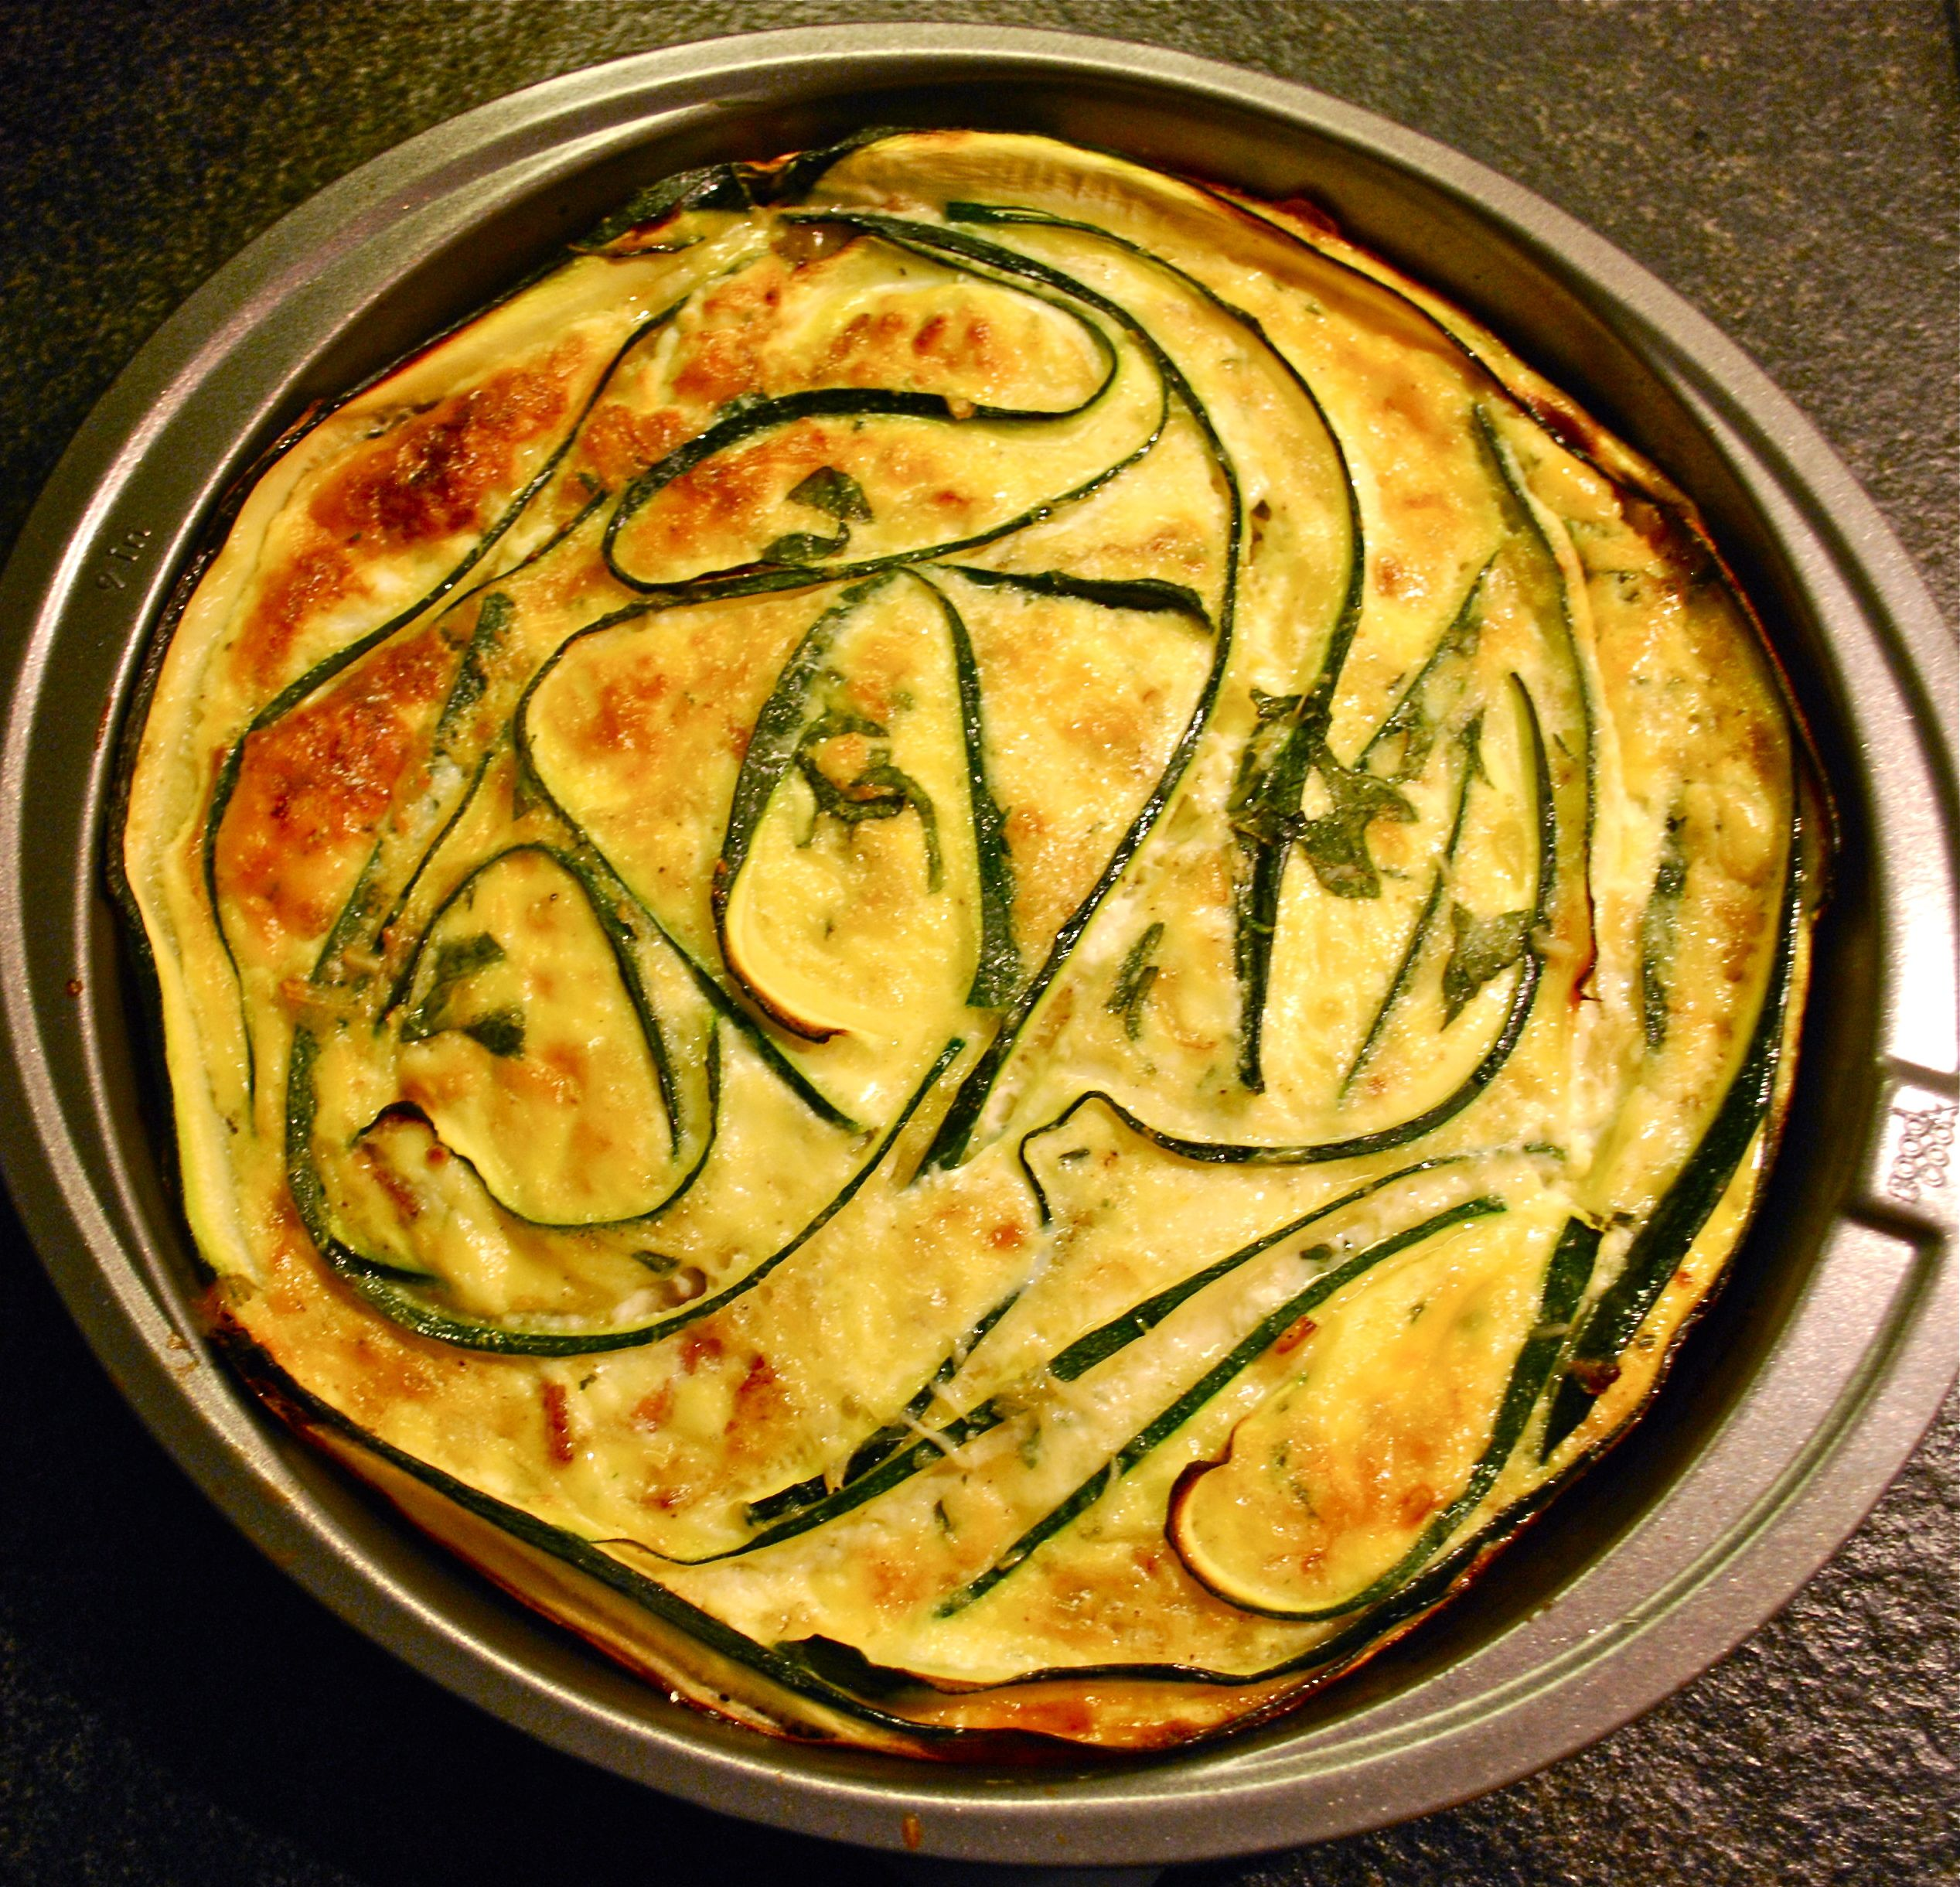 Zucchini Ribbon Quiche with Roasted Grape Tomatoes